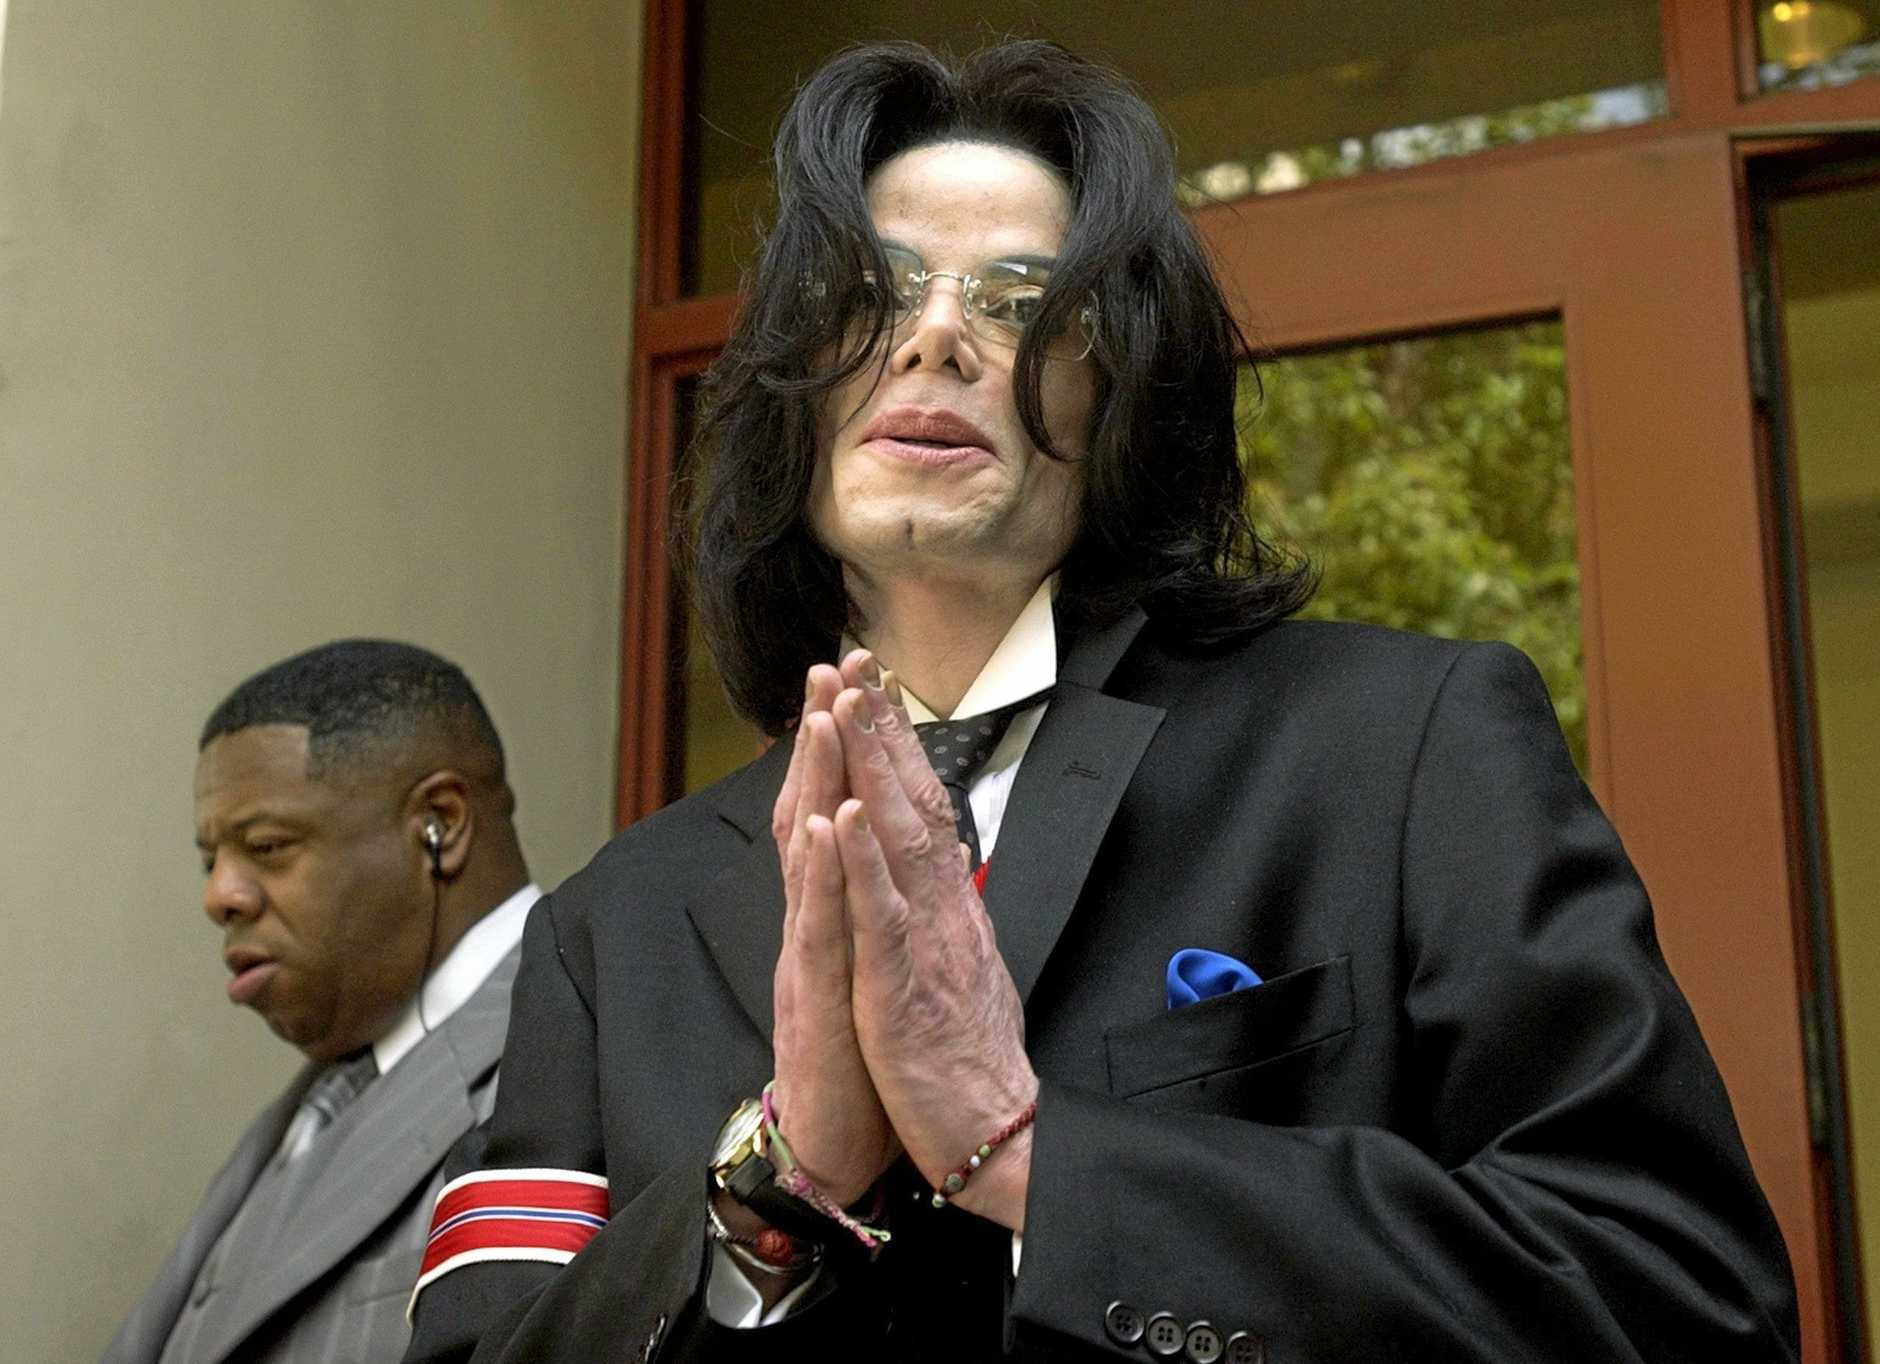 US pop star Michael Jackson gestures as he departs the Santa Barbara County Courthouse following a day of defense testimony in his trial on child molestation charges in Santa Maria, California, USA, 13 May 2005. The Los Angeles coroner Fred Coral confirmed that pop star Michael Jackson had died on 25 June 2009 of cardiac arrest. In an audio interview with CNN, Coral said Jackson was pronounced dead at 2:26 pm local California time after paramedics responded to a call at his house.  EPA/AARON LAMBERT/POOL